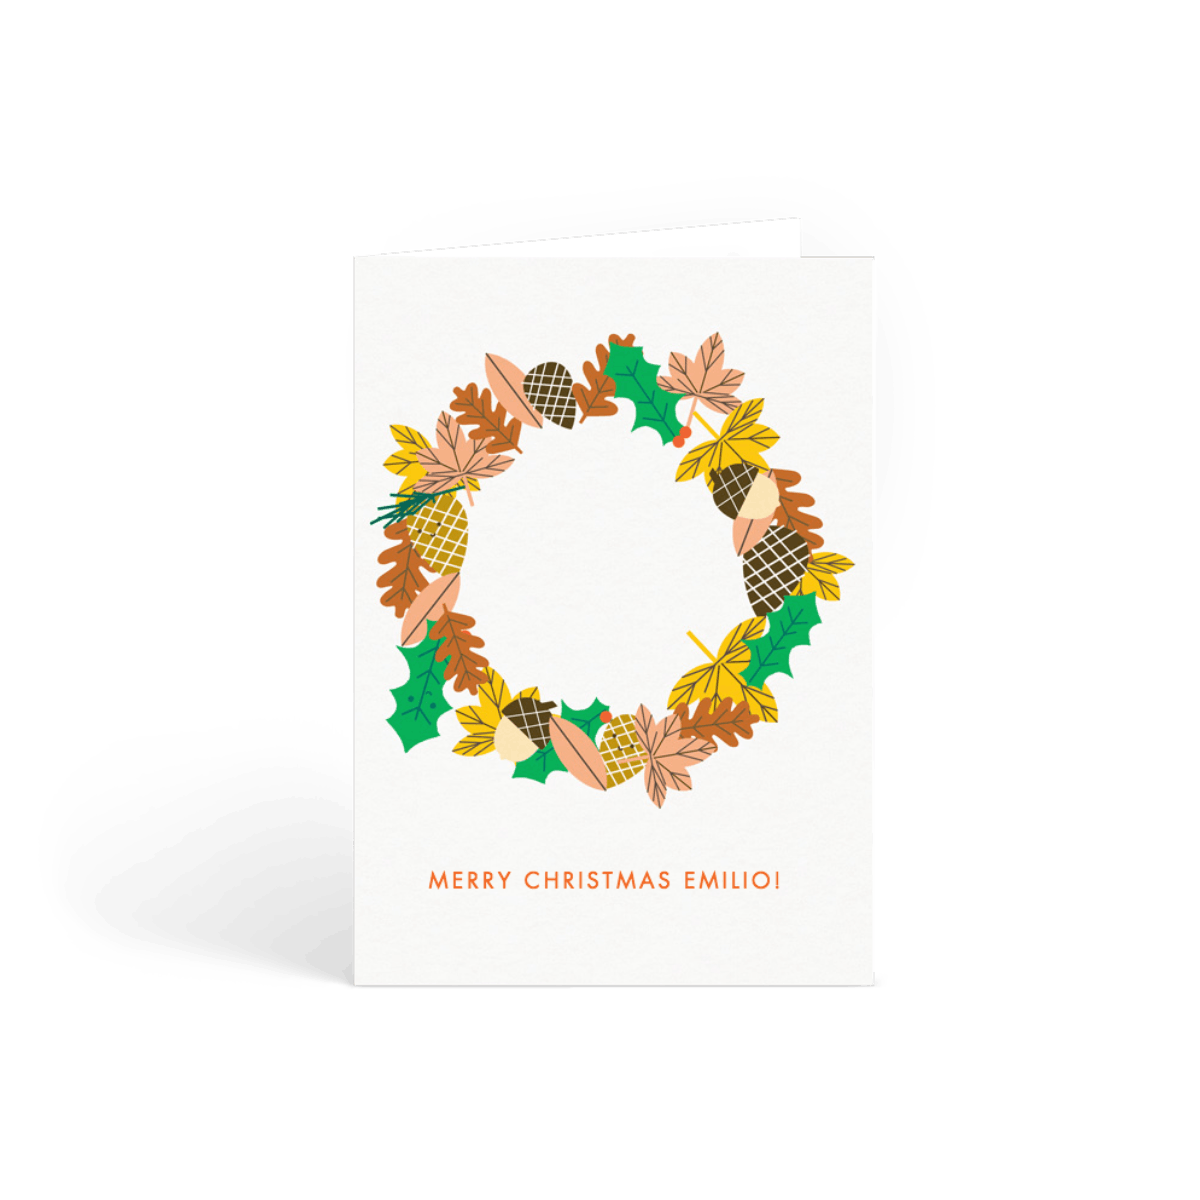 Https%3a%2f%2fwww.papier.com%2fproduct image%2f31191%2f2%2fautumn wreath 7834 front 1542365628.png?ixlib=rb 1.1